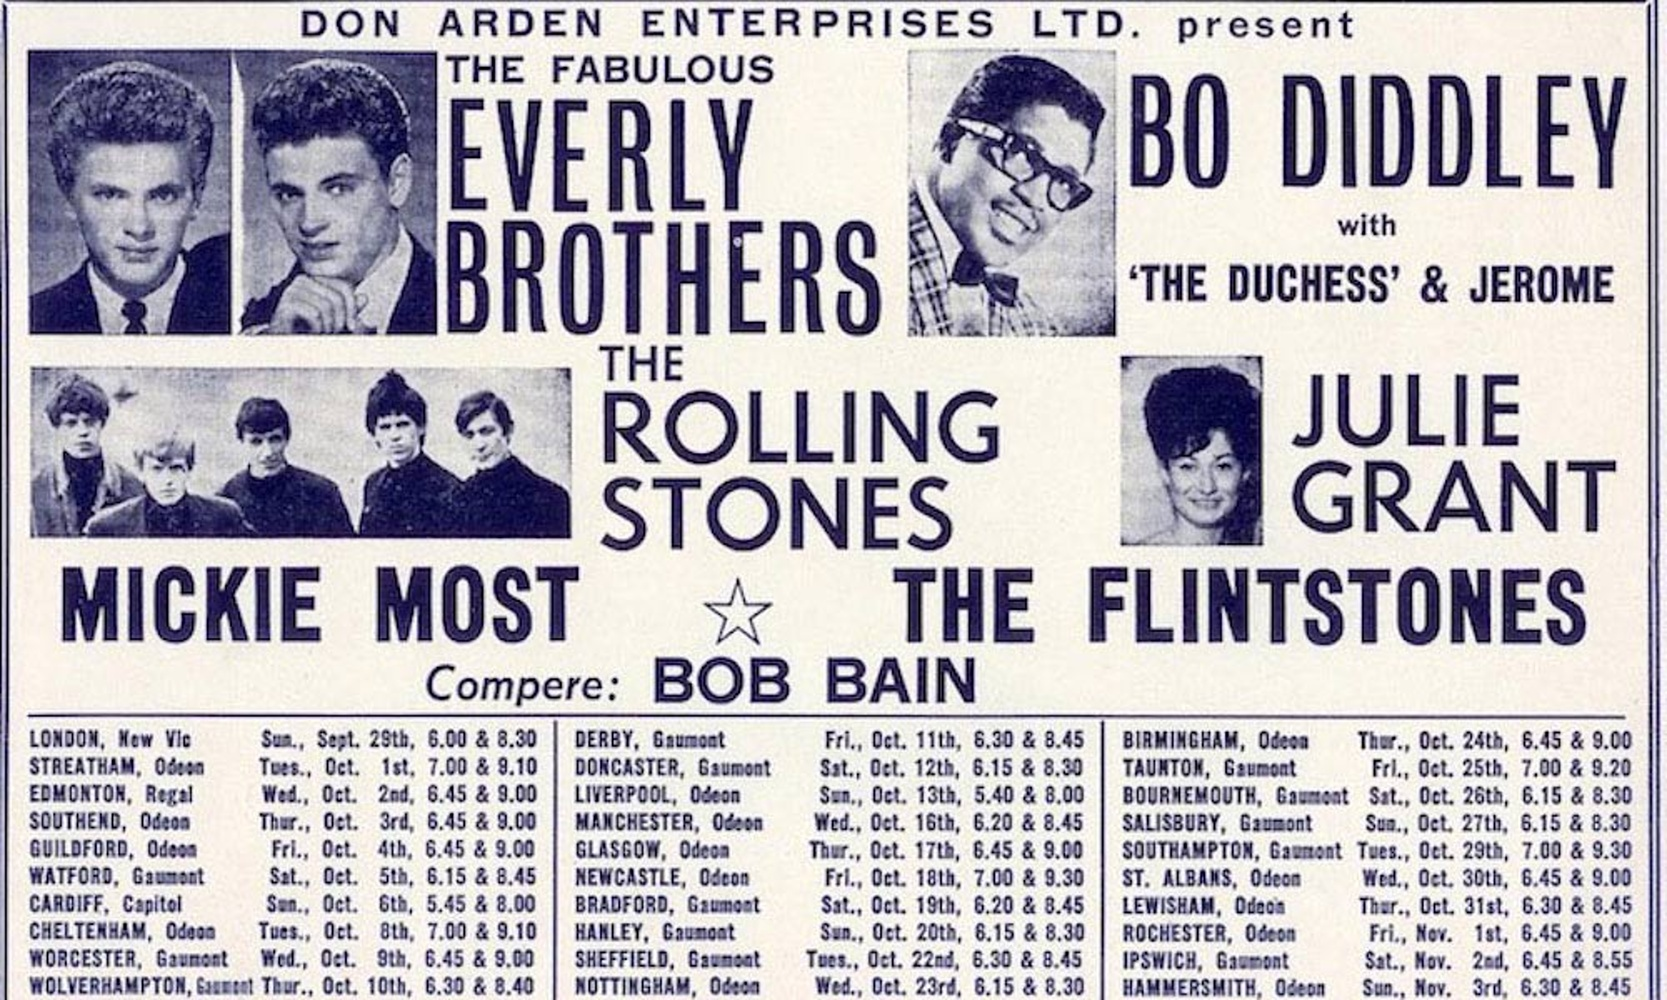 Poster of The Rolling Stones' First Tour / сентябрь 1963